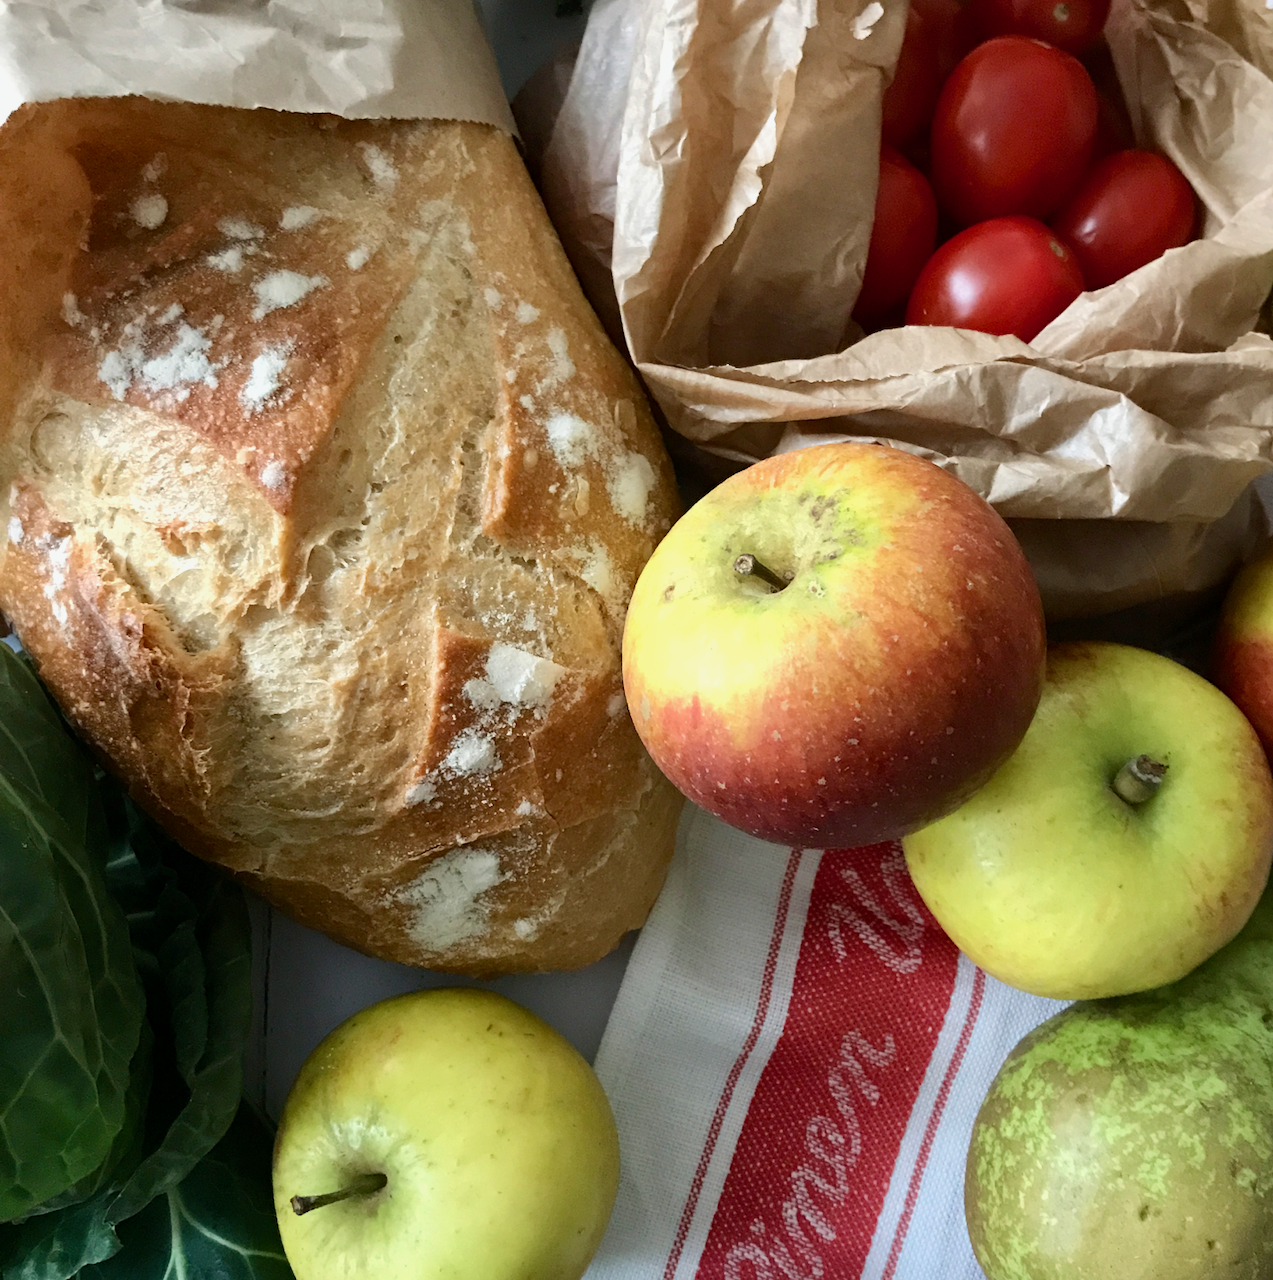 Plastic free shopping at Ely Markets